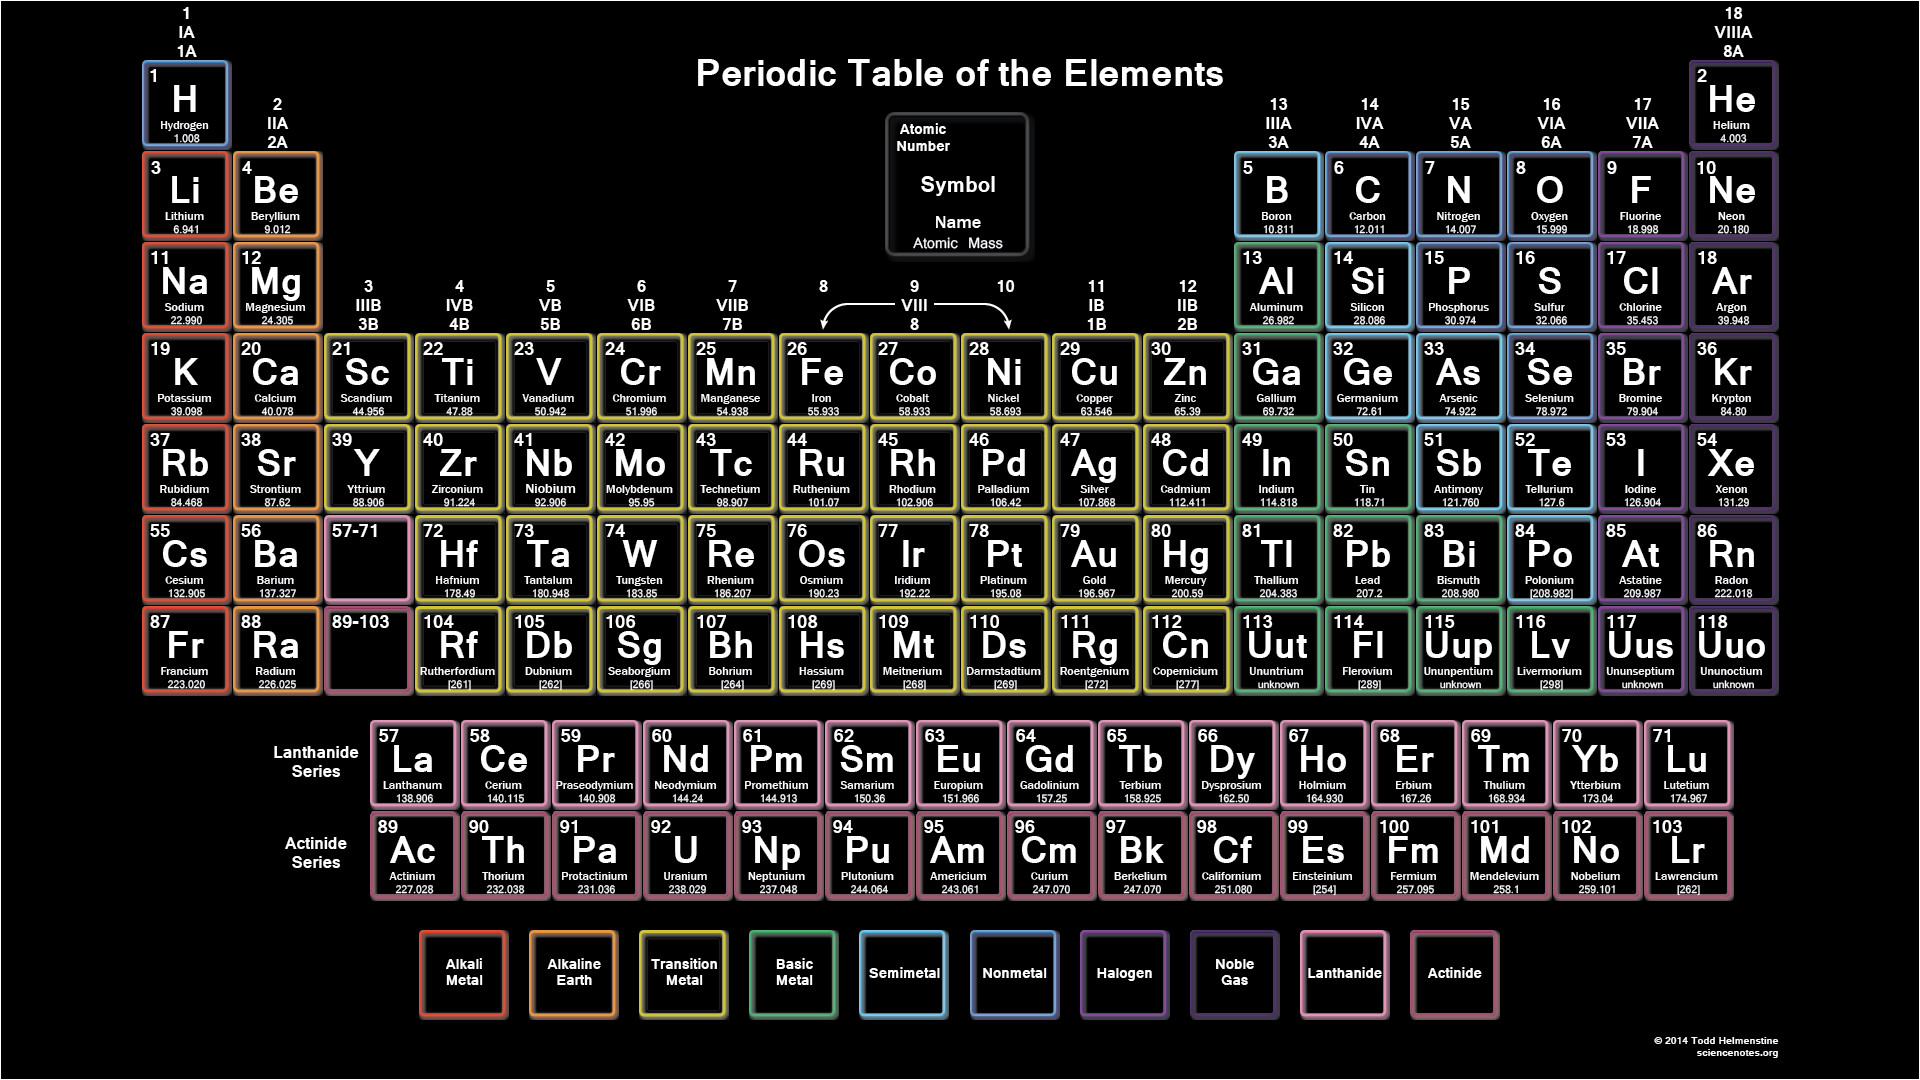 Periodic table of elements desktop wallpaper 1920x1080 home decor periodic table table color printable periodic gamestrikefo Images